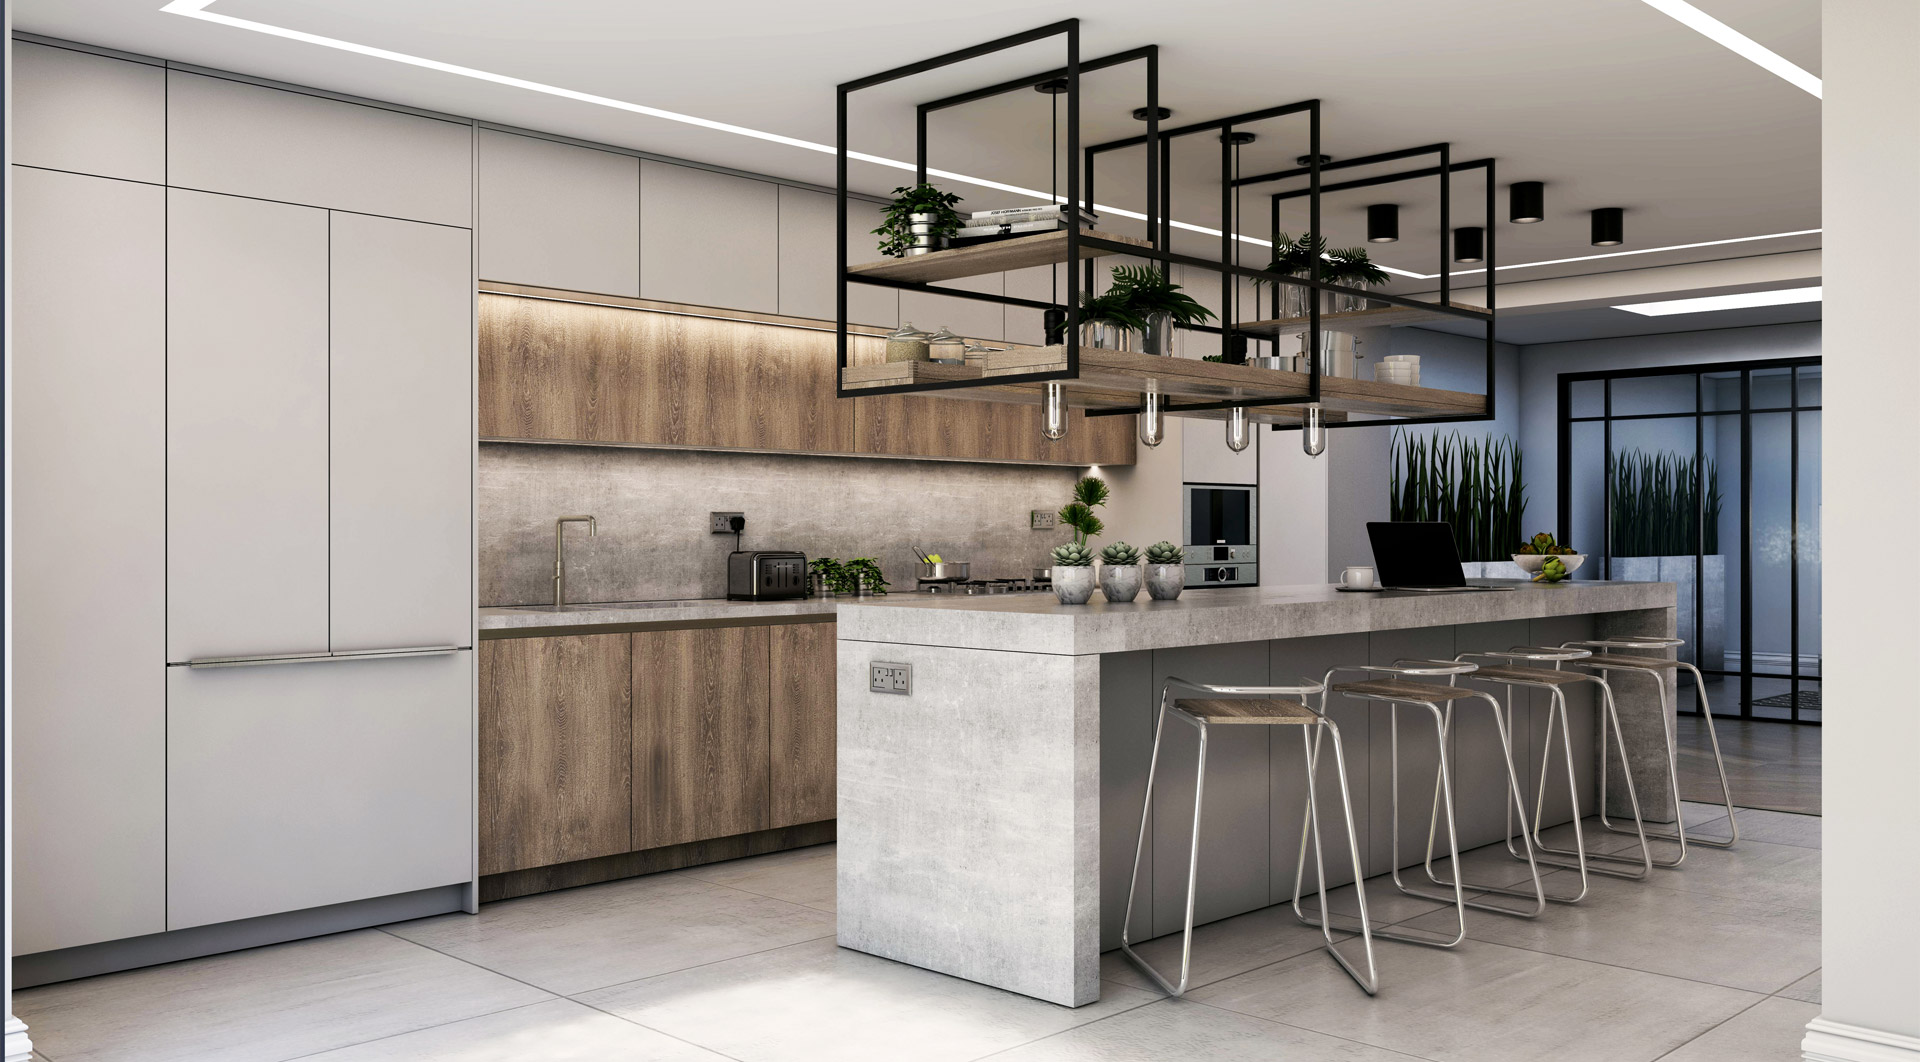 Bespoke, custom kitchen design London - New line kitchen design